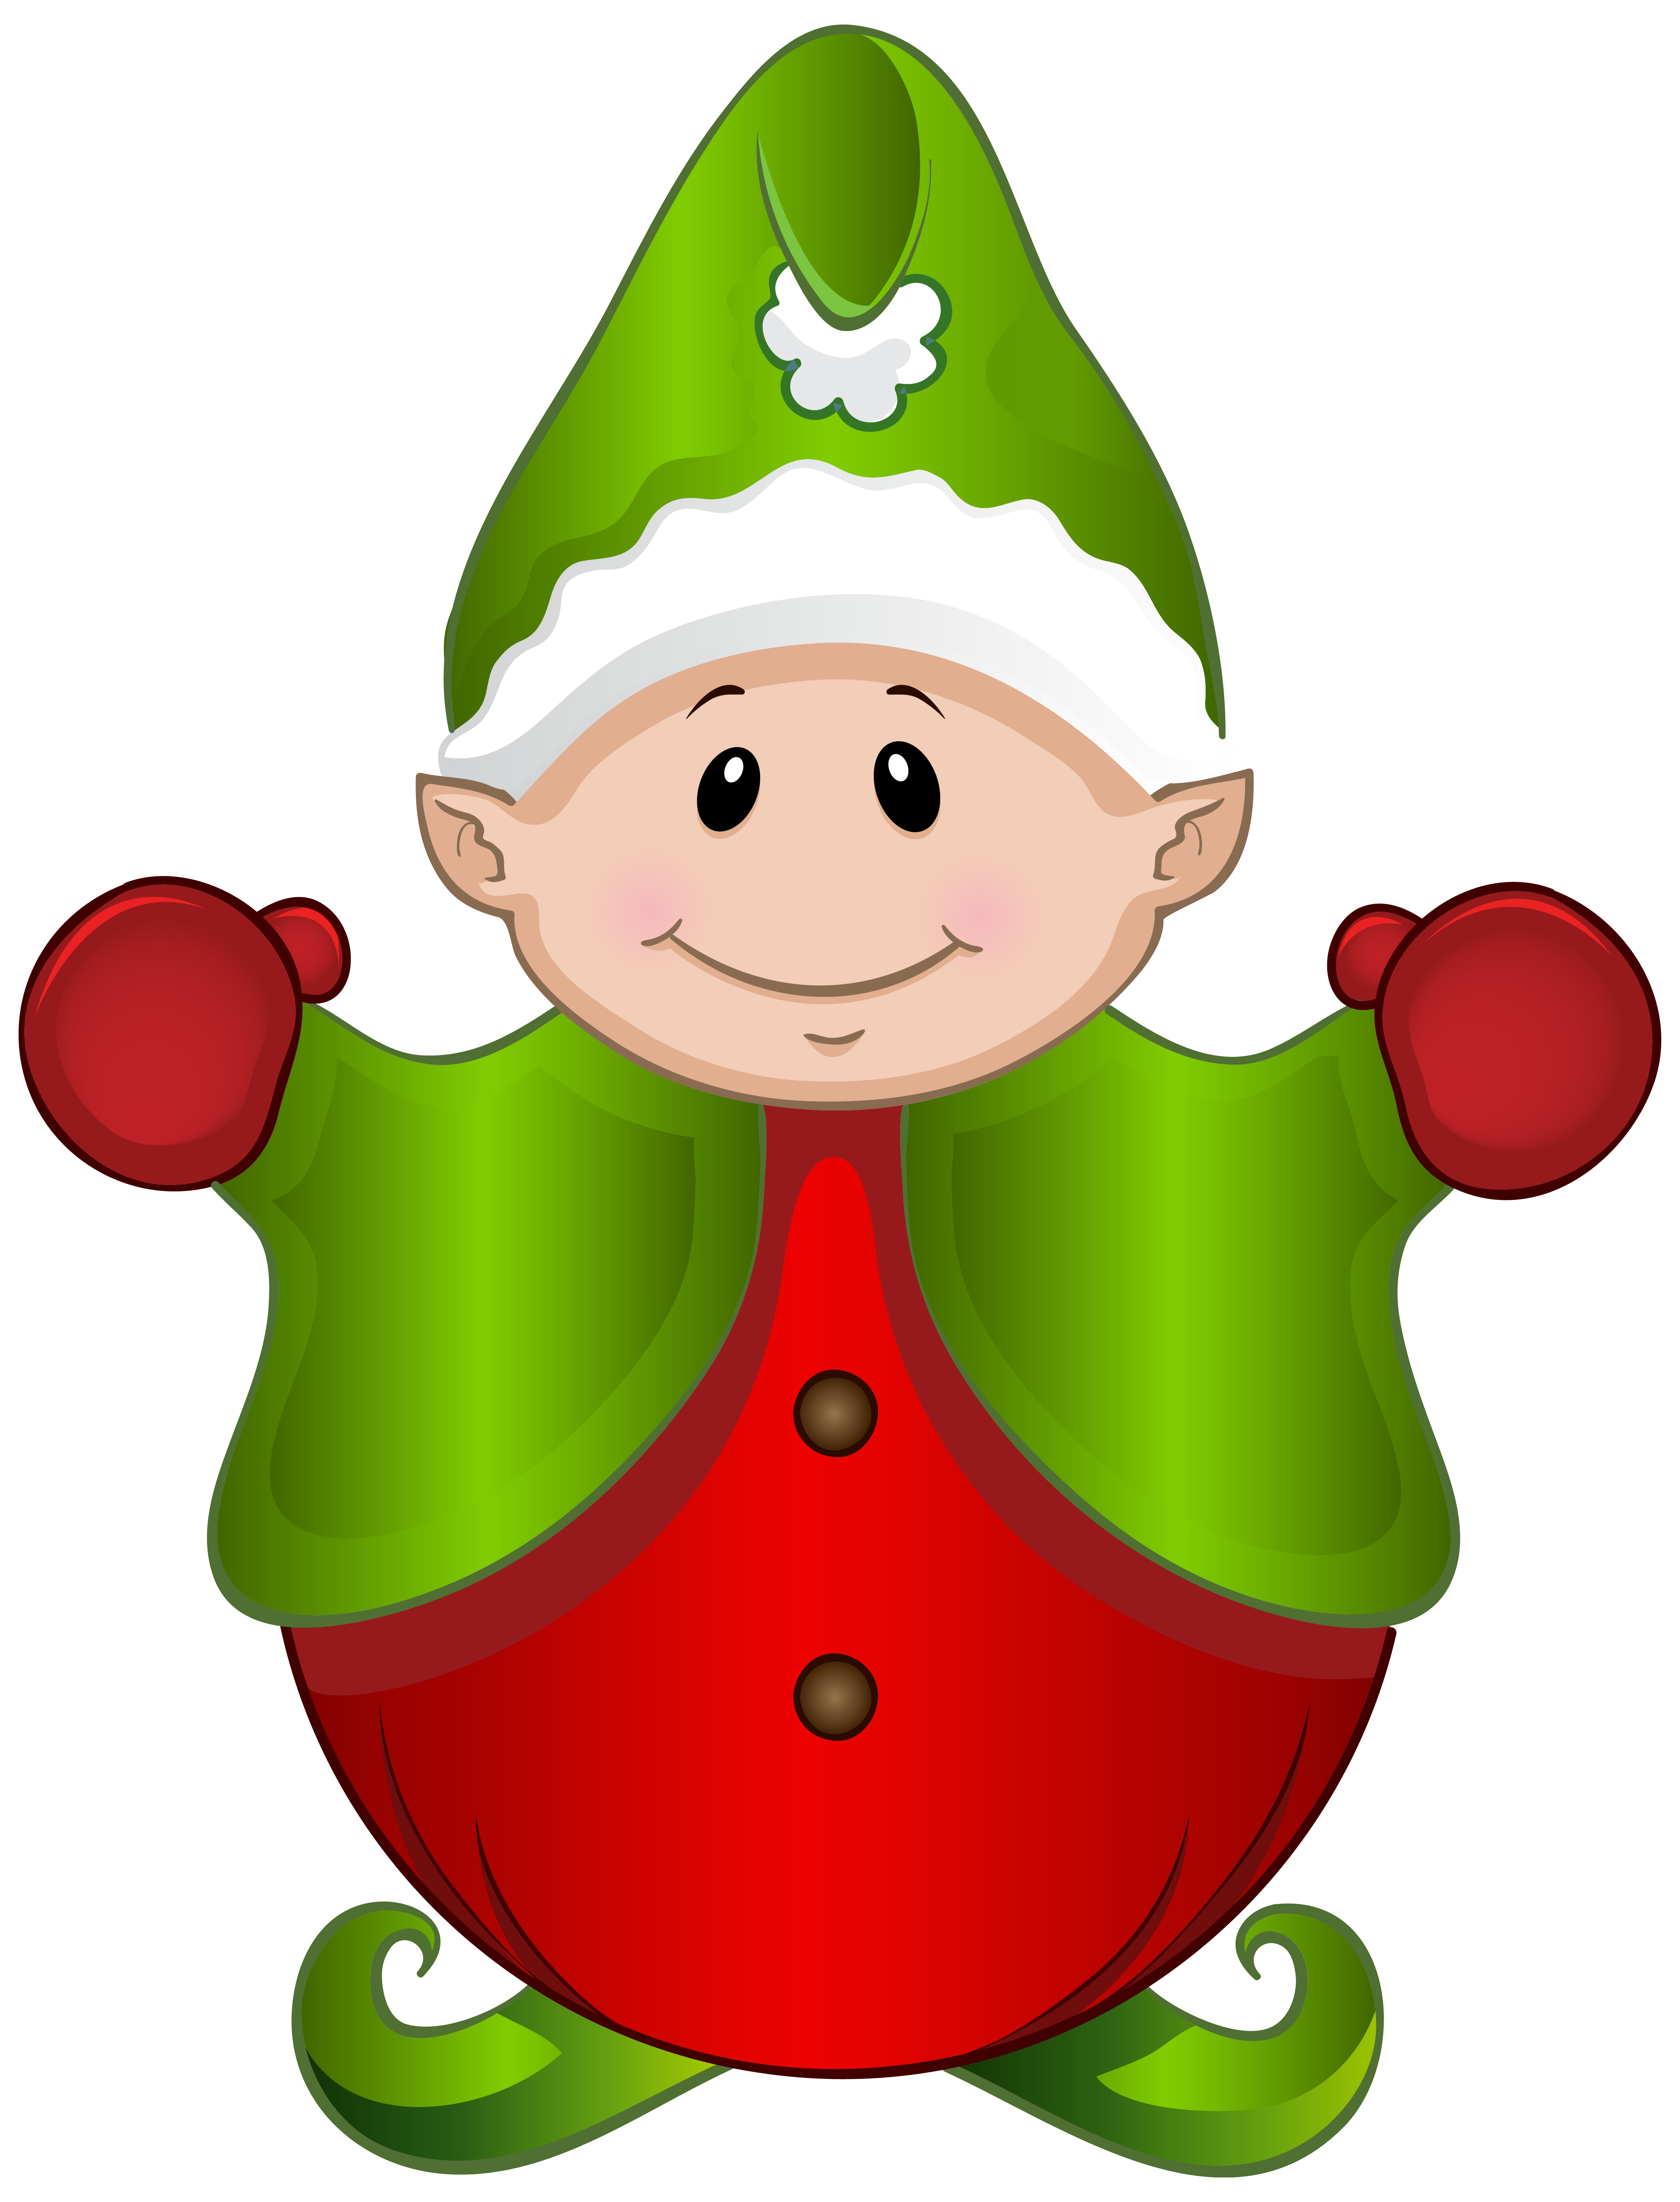 Cute christmas elf clipart clip art free download 28+ Collection of Cute Elf Clipart | High quality, free cliparts ... clip art free download